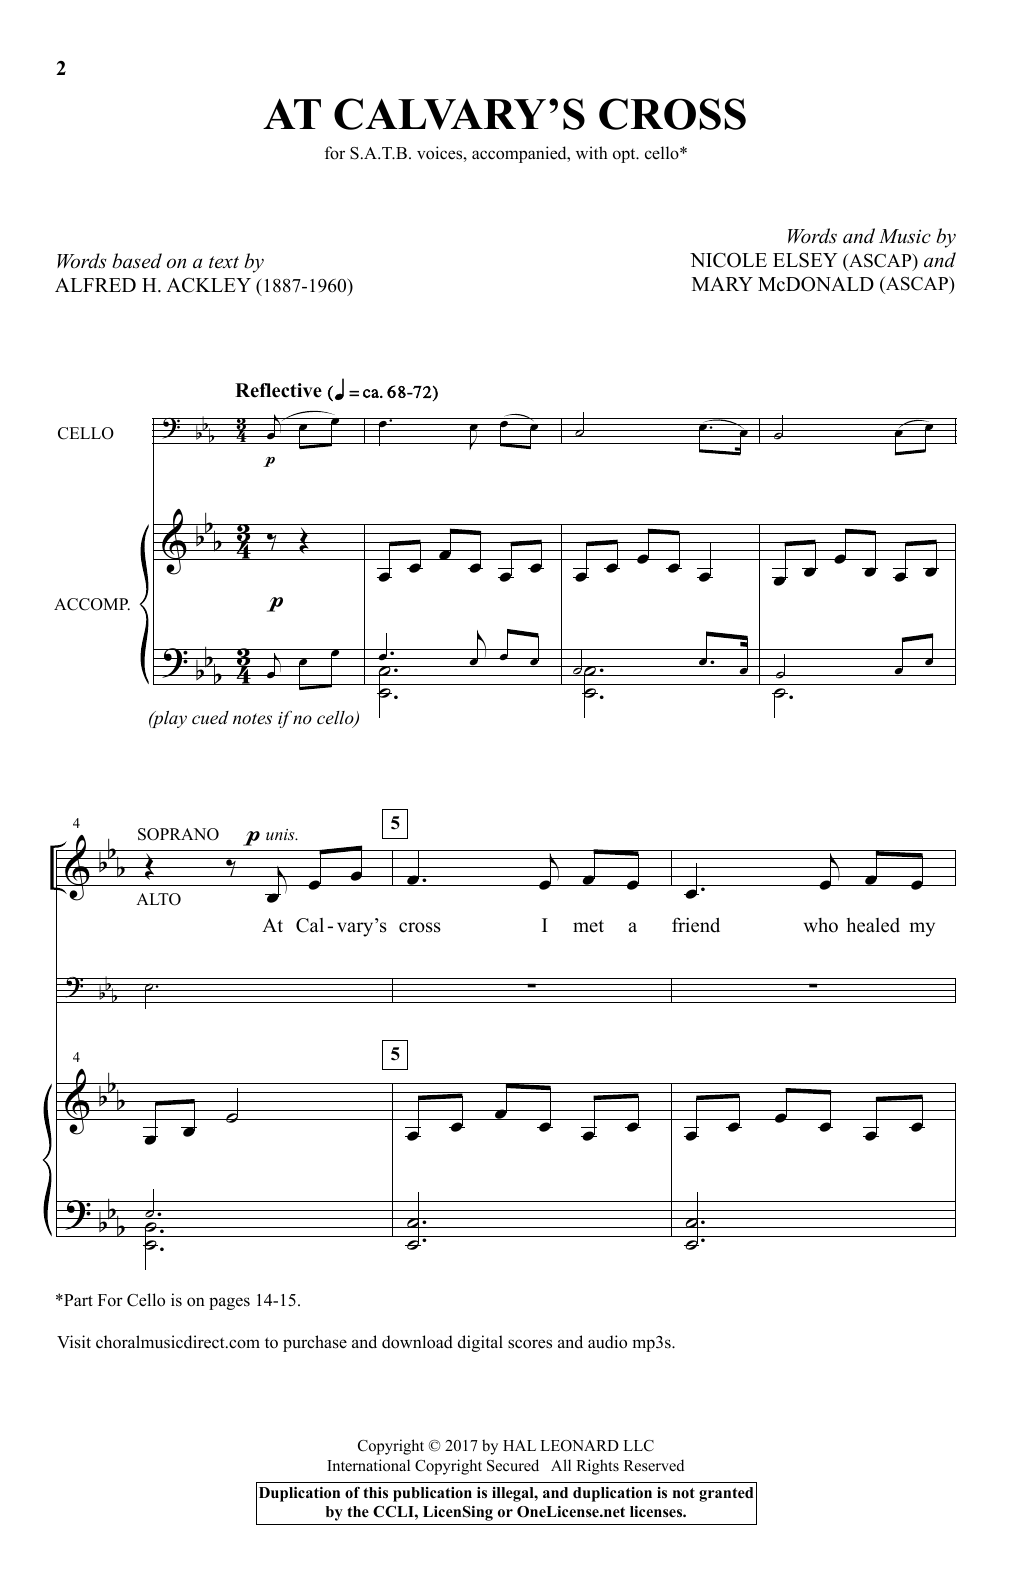 Nicole Elsey At Calvary's Cross sheet music notes and chords. Download Printable PDF.